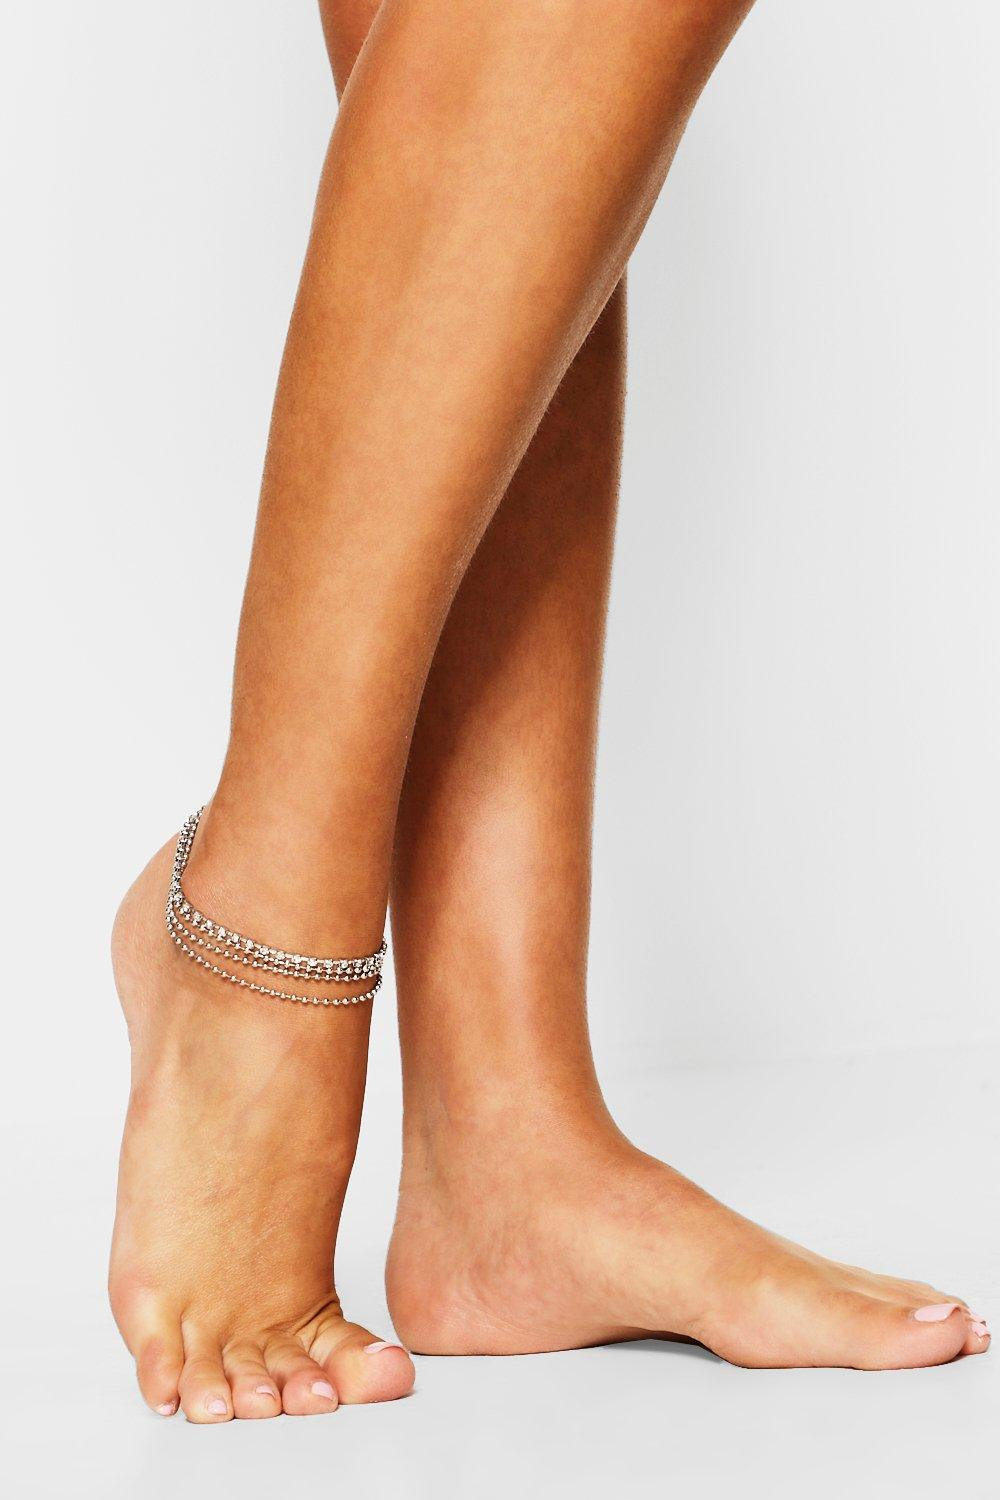 boohoo Womens Diamante Anklet - Grey - One Size, Grey